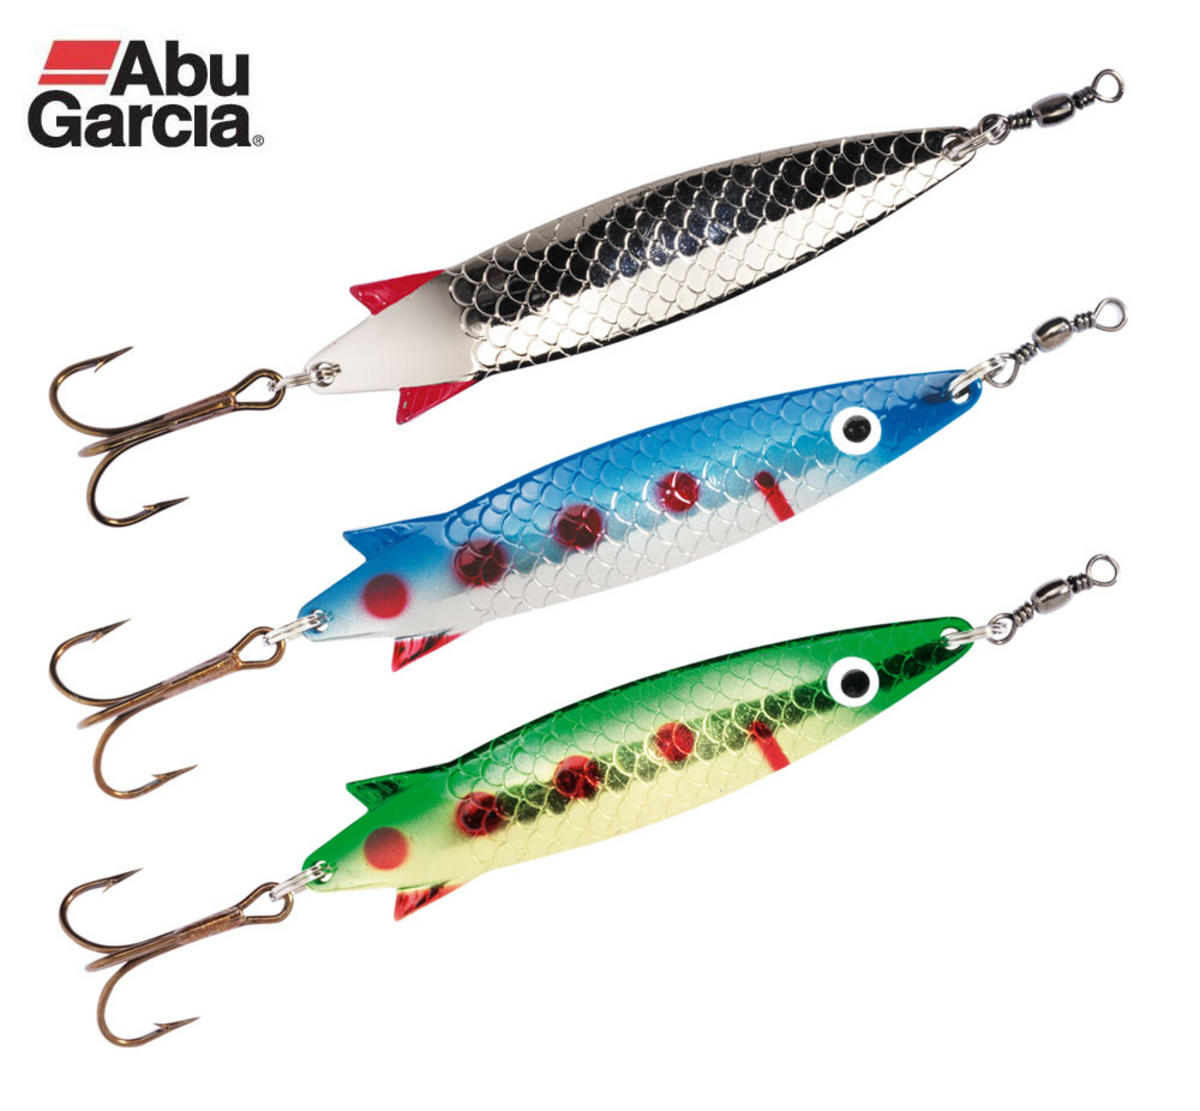 ABU GARCIA CLASSIC TOBY LURES 3 PACK 28gm 1303244